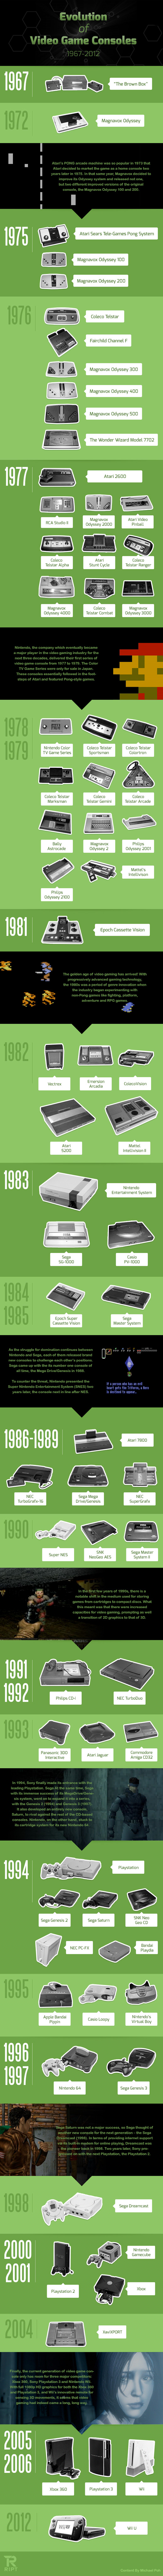 evolution-of-video-game-consoles-infographic